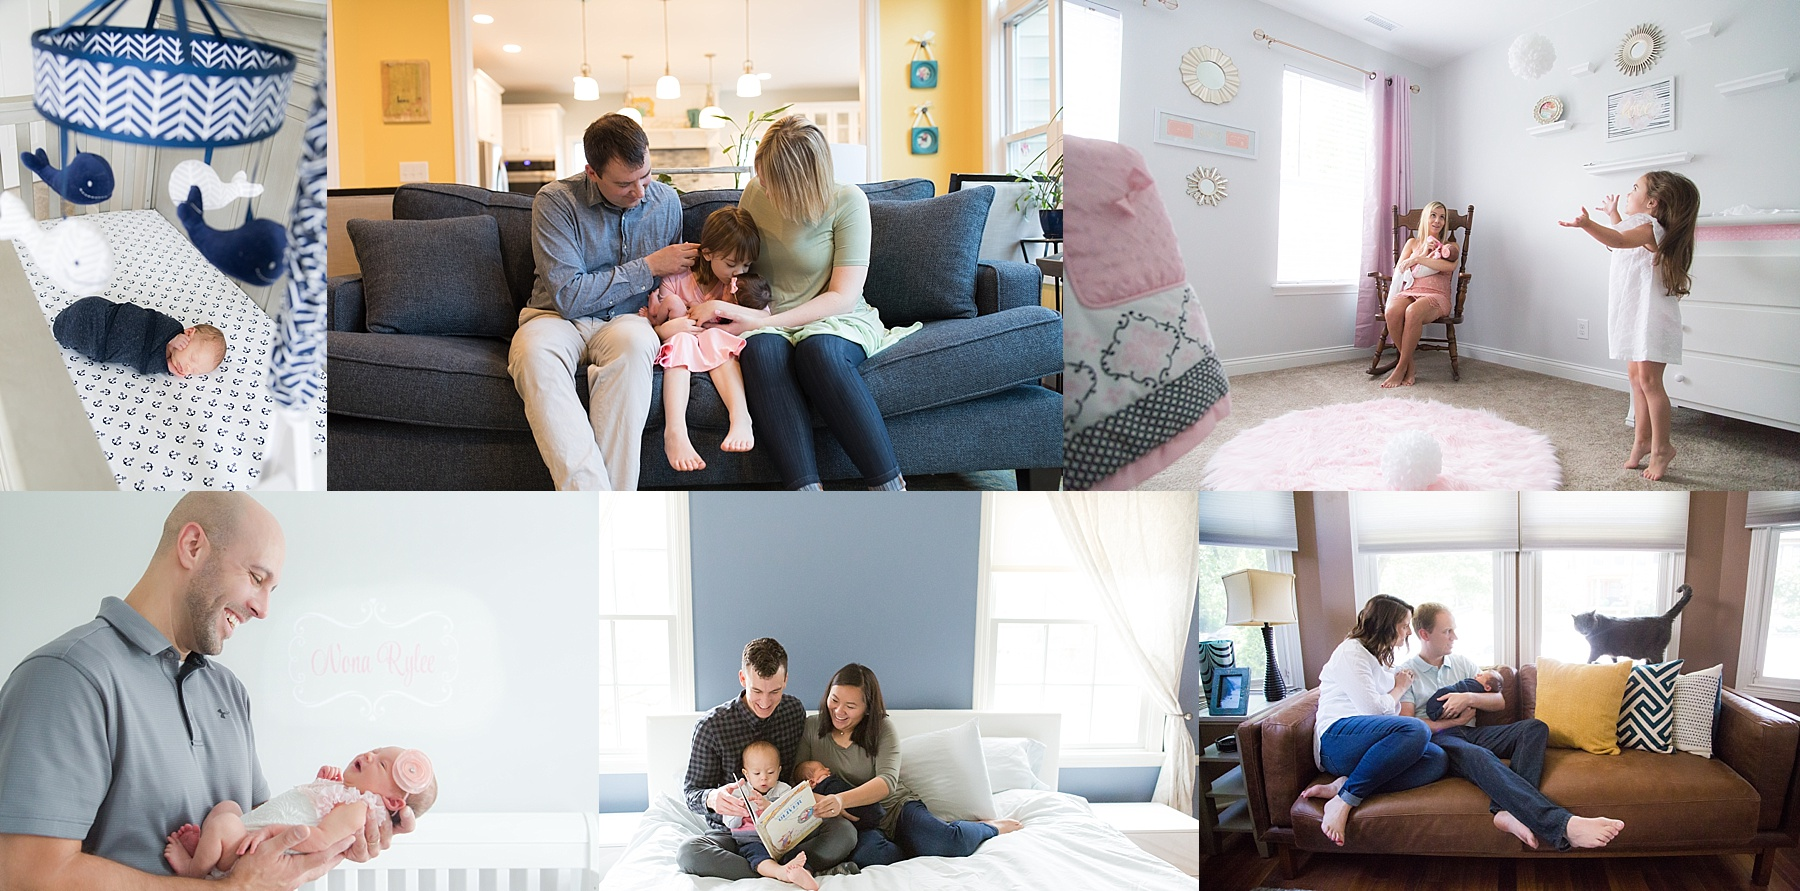 Lifestyle newborn photos taken at homes in Indianapolis displayed in newborn photo session preparation guide.